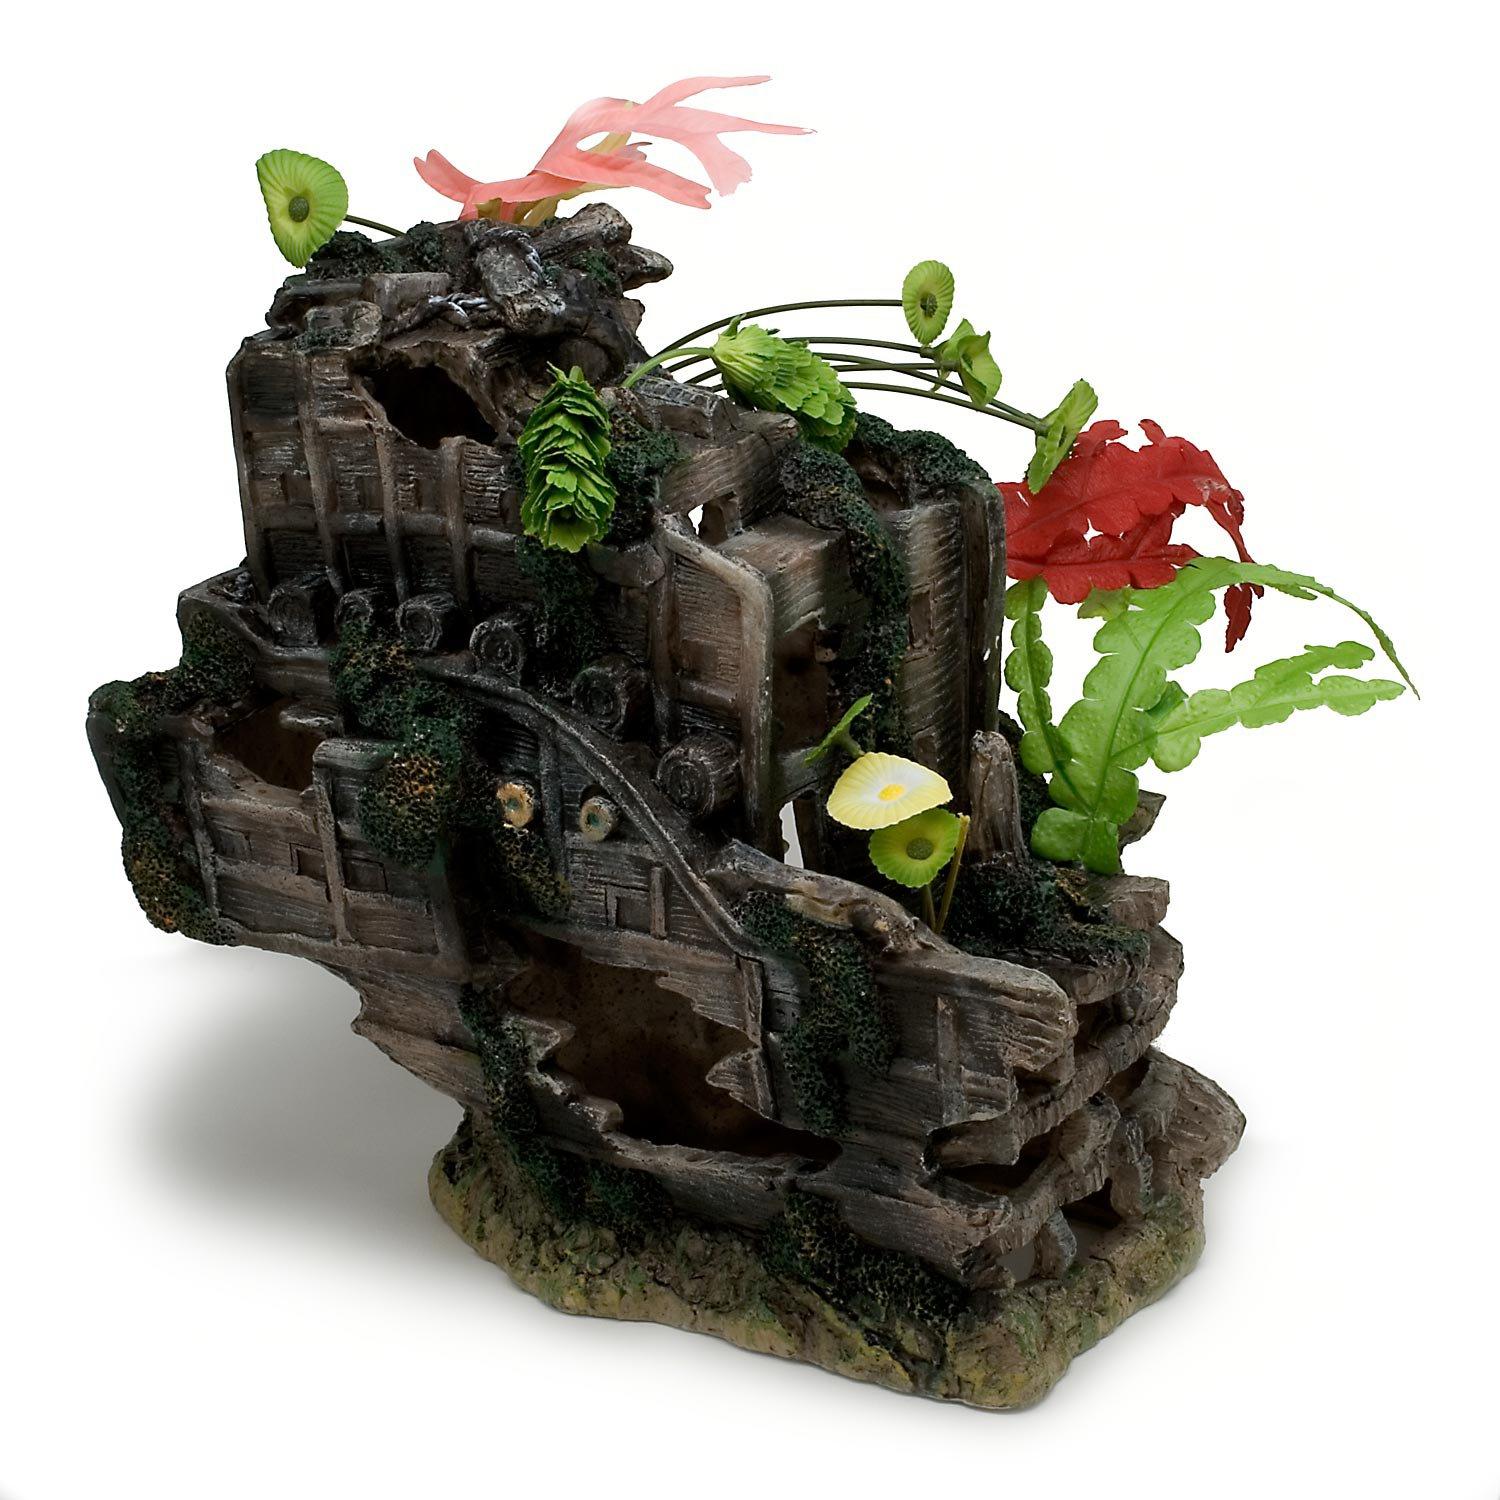 Penn plax sunken gardens shipwreck stern aquarium decor for Aquarium decoration ship